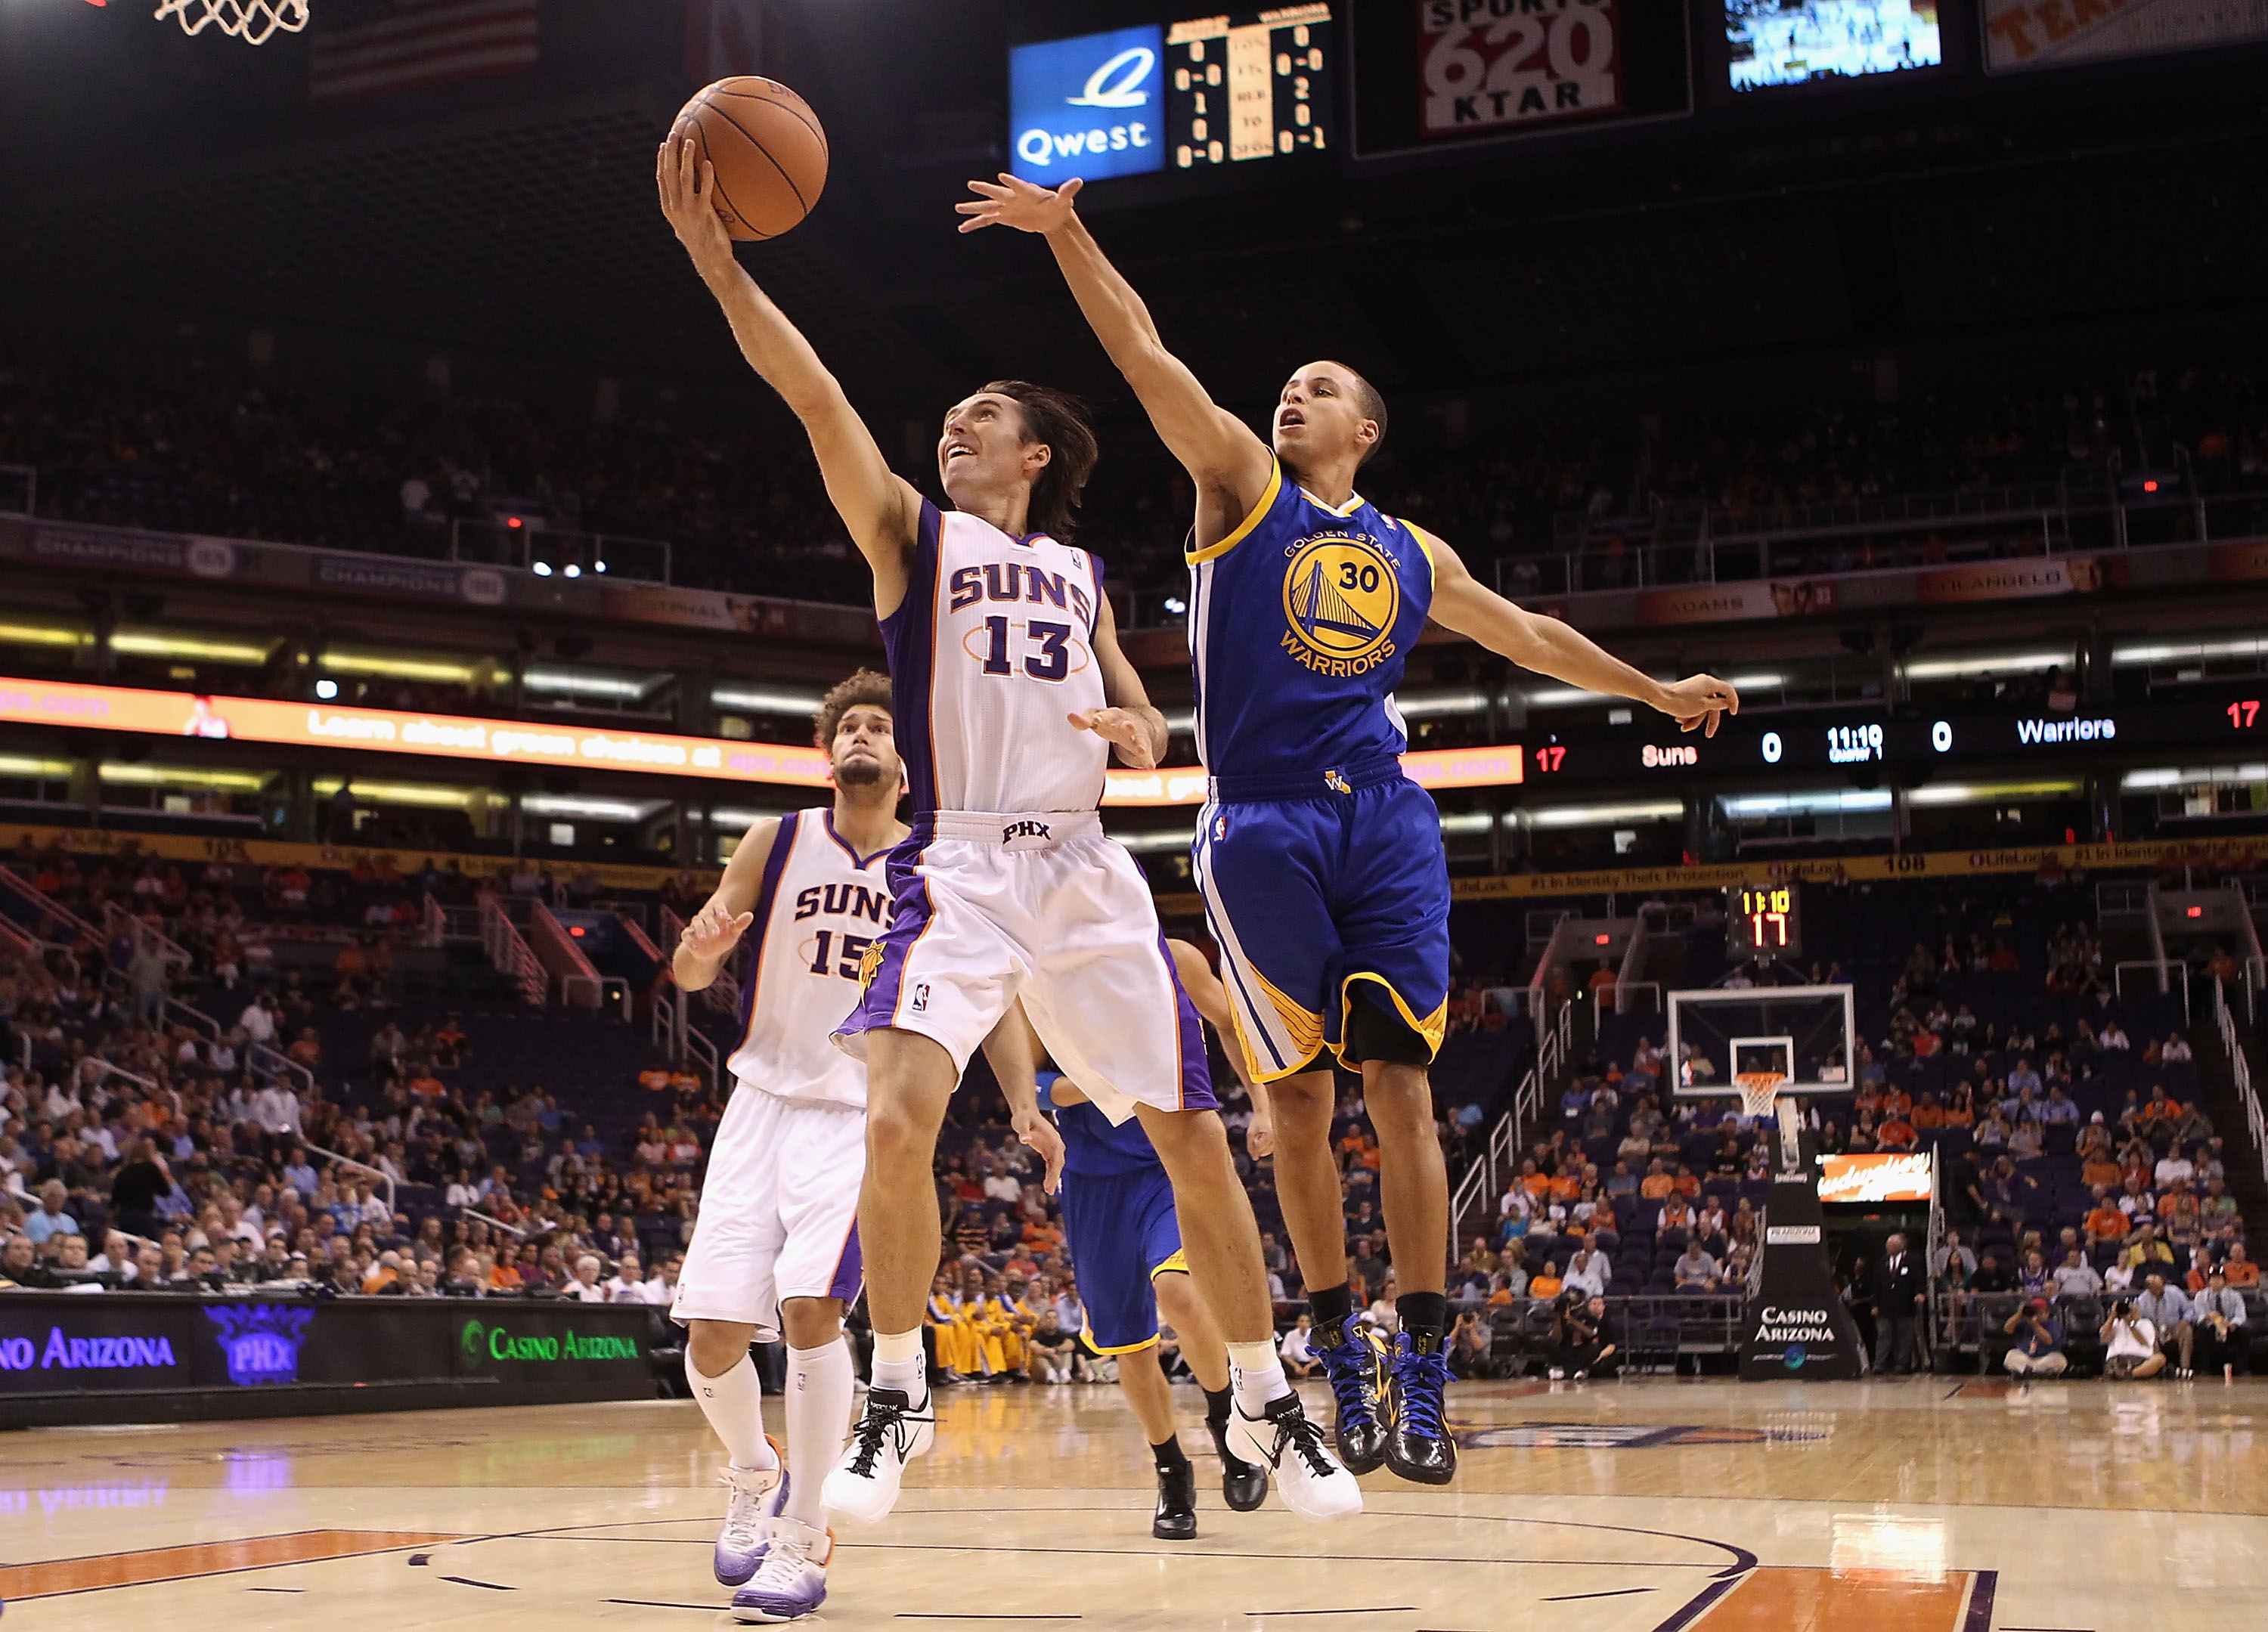 PHOENIX - OCTOBER 19:  Steve Nash #13 of the Phoenix Suns lays up a shot past Stephen Curry #30 of the Golden State Warriors during the preseason NBA game at US Airways Center on October 19, 2010 in Phoenix, Arizona. NOTE TO USER: User expressly acknowled